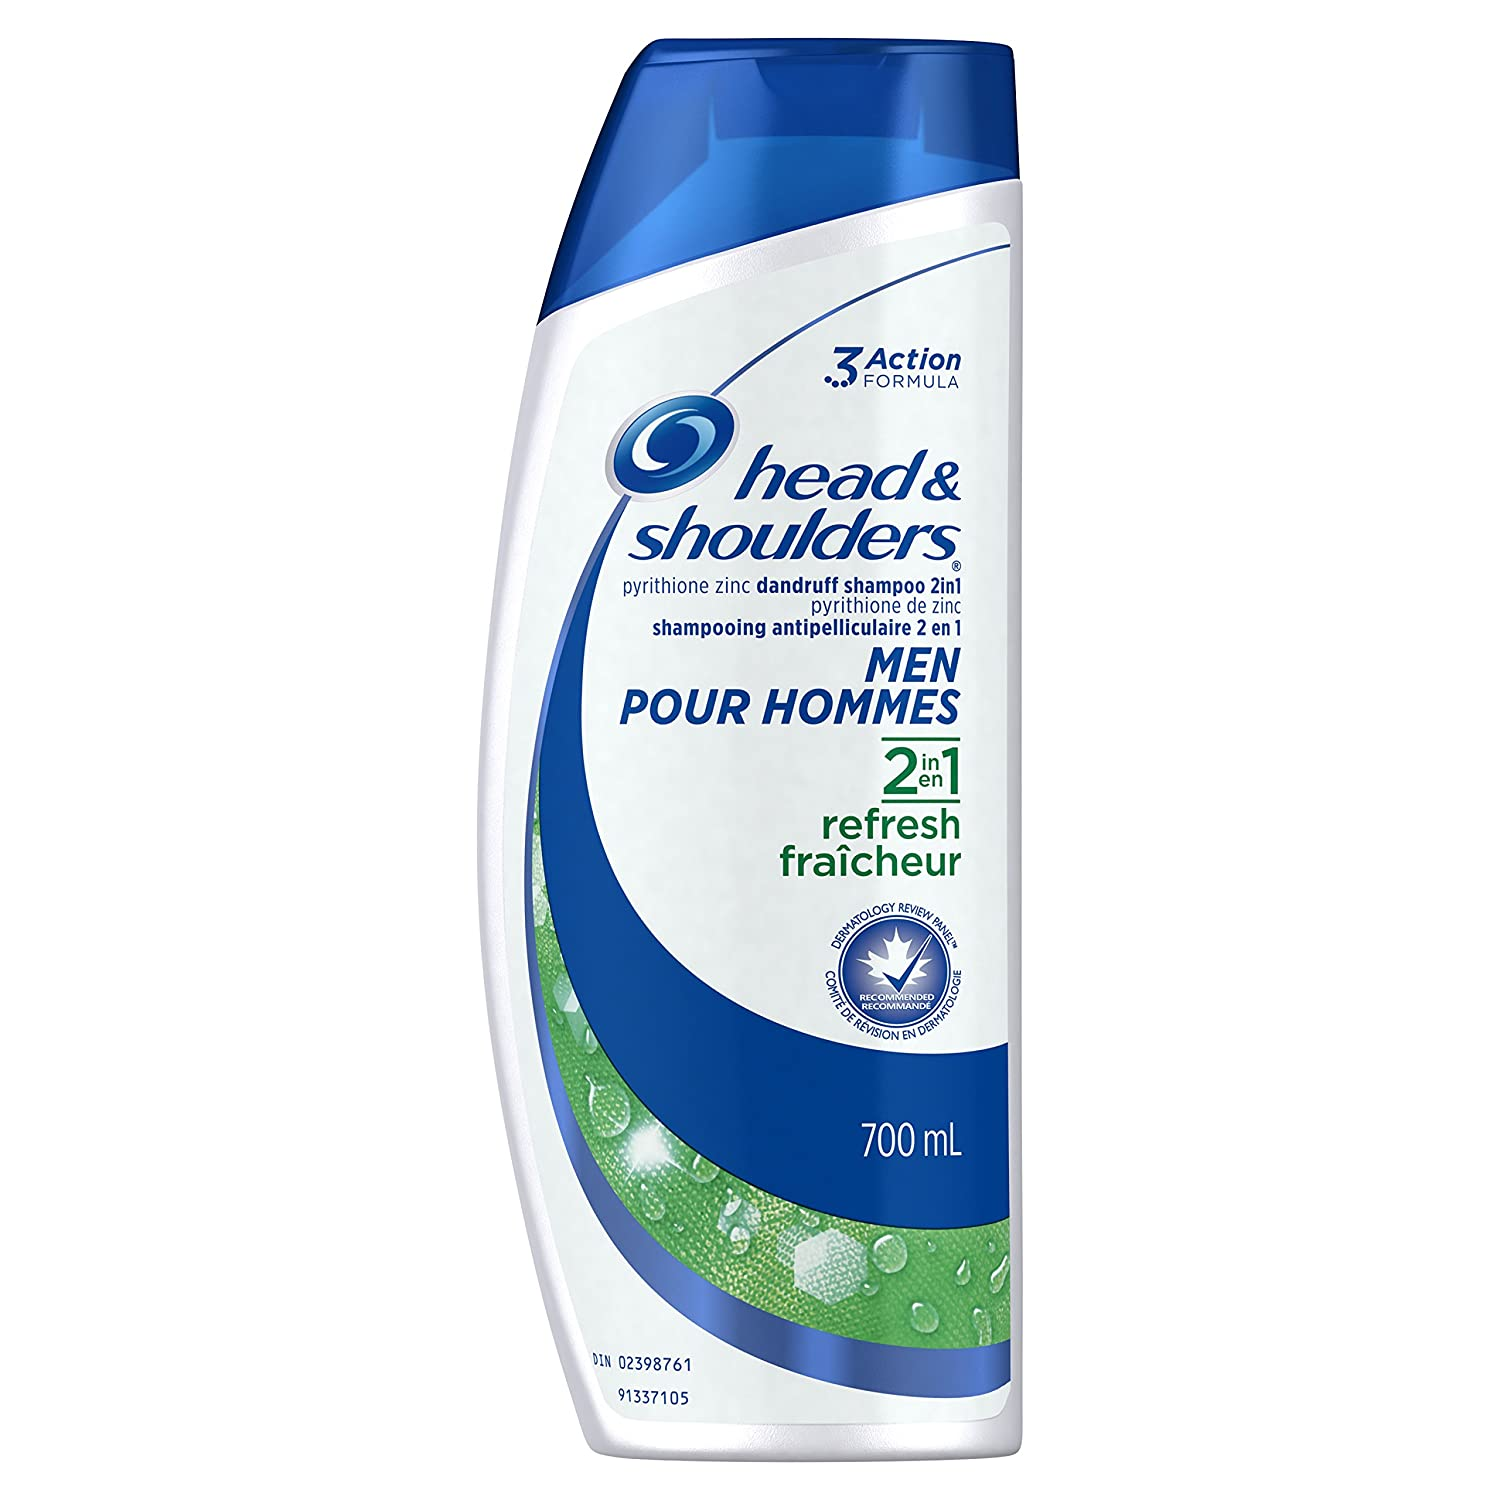 Head & Shoulders Refresh 2-in-1 Anti-Dandruff Shampoo + Conditioner For Men 700ml Procter and Gamble